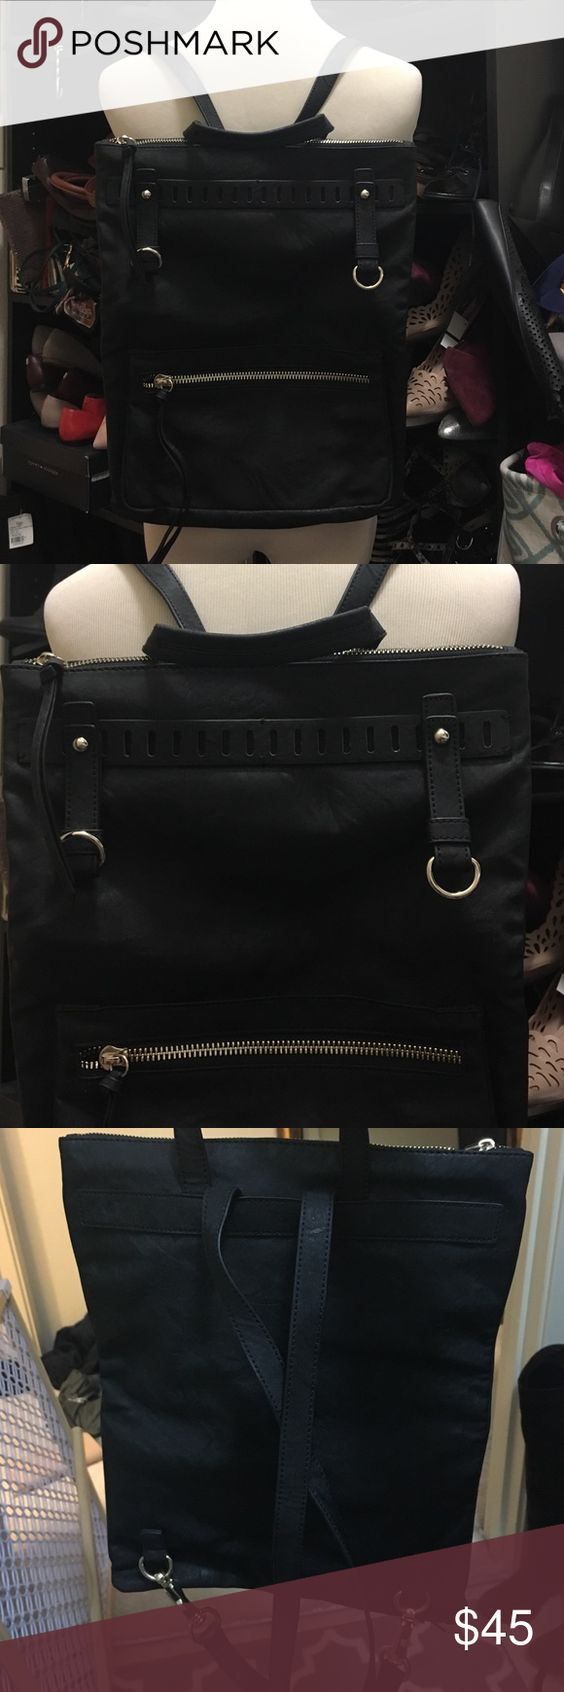 Free people backpack black and faux leather Flat and low profile backpack, great for traveling ! Free People Bags Backpacks